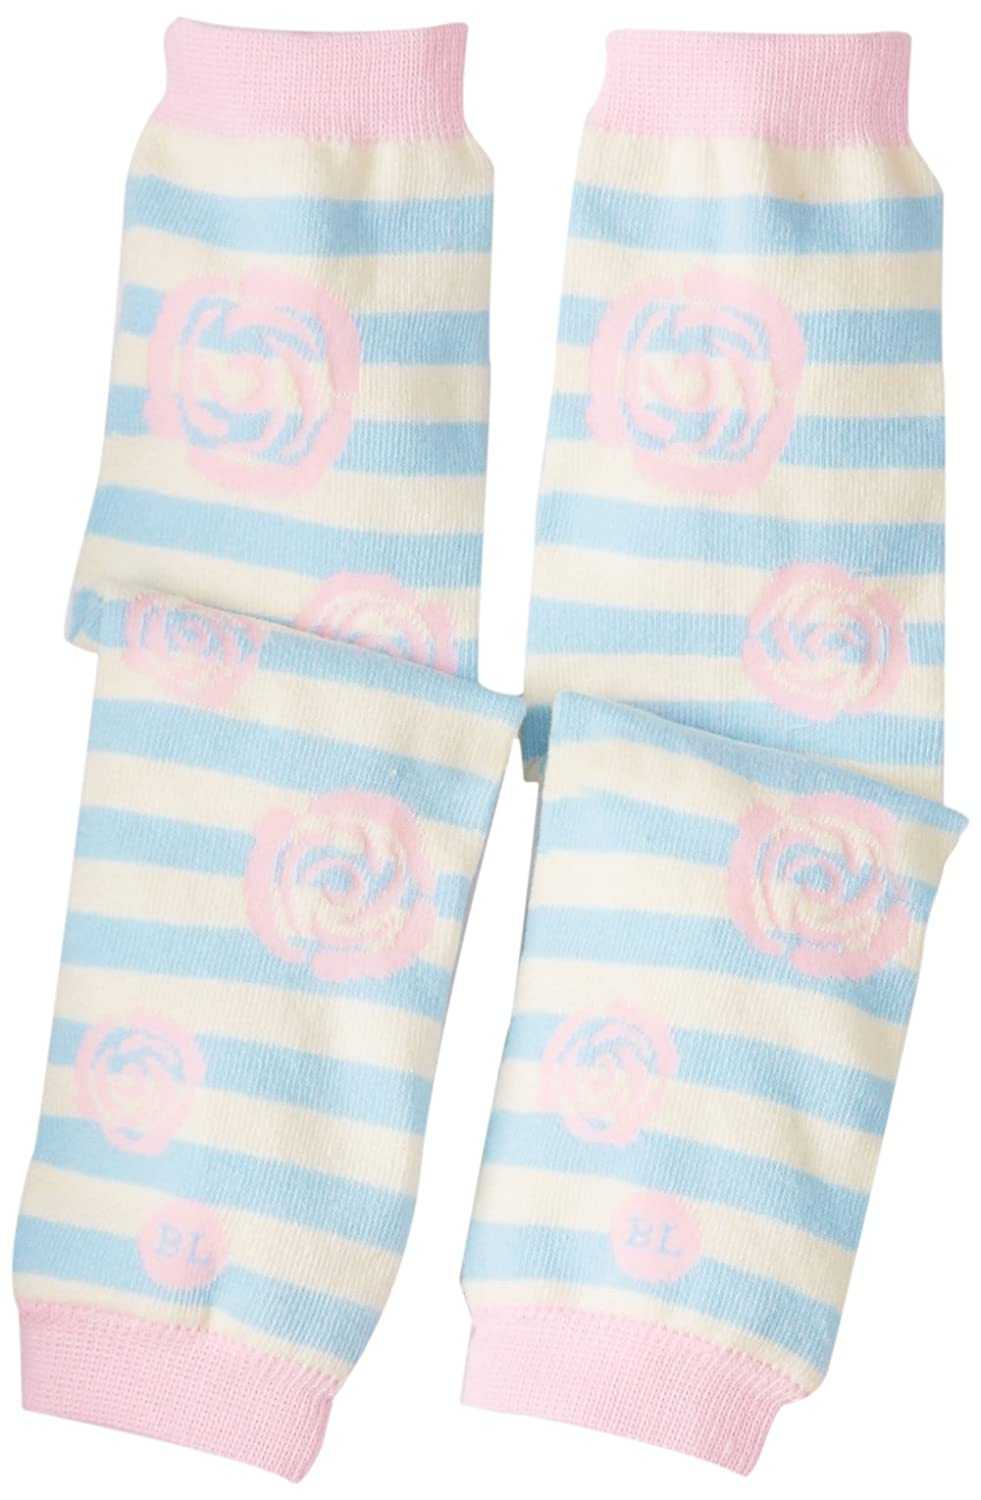 BabyLegs Baby-Girls Infant Rosette, Blue/Pink, One Size BL13-0063